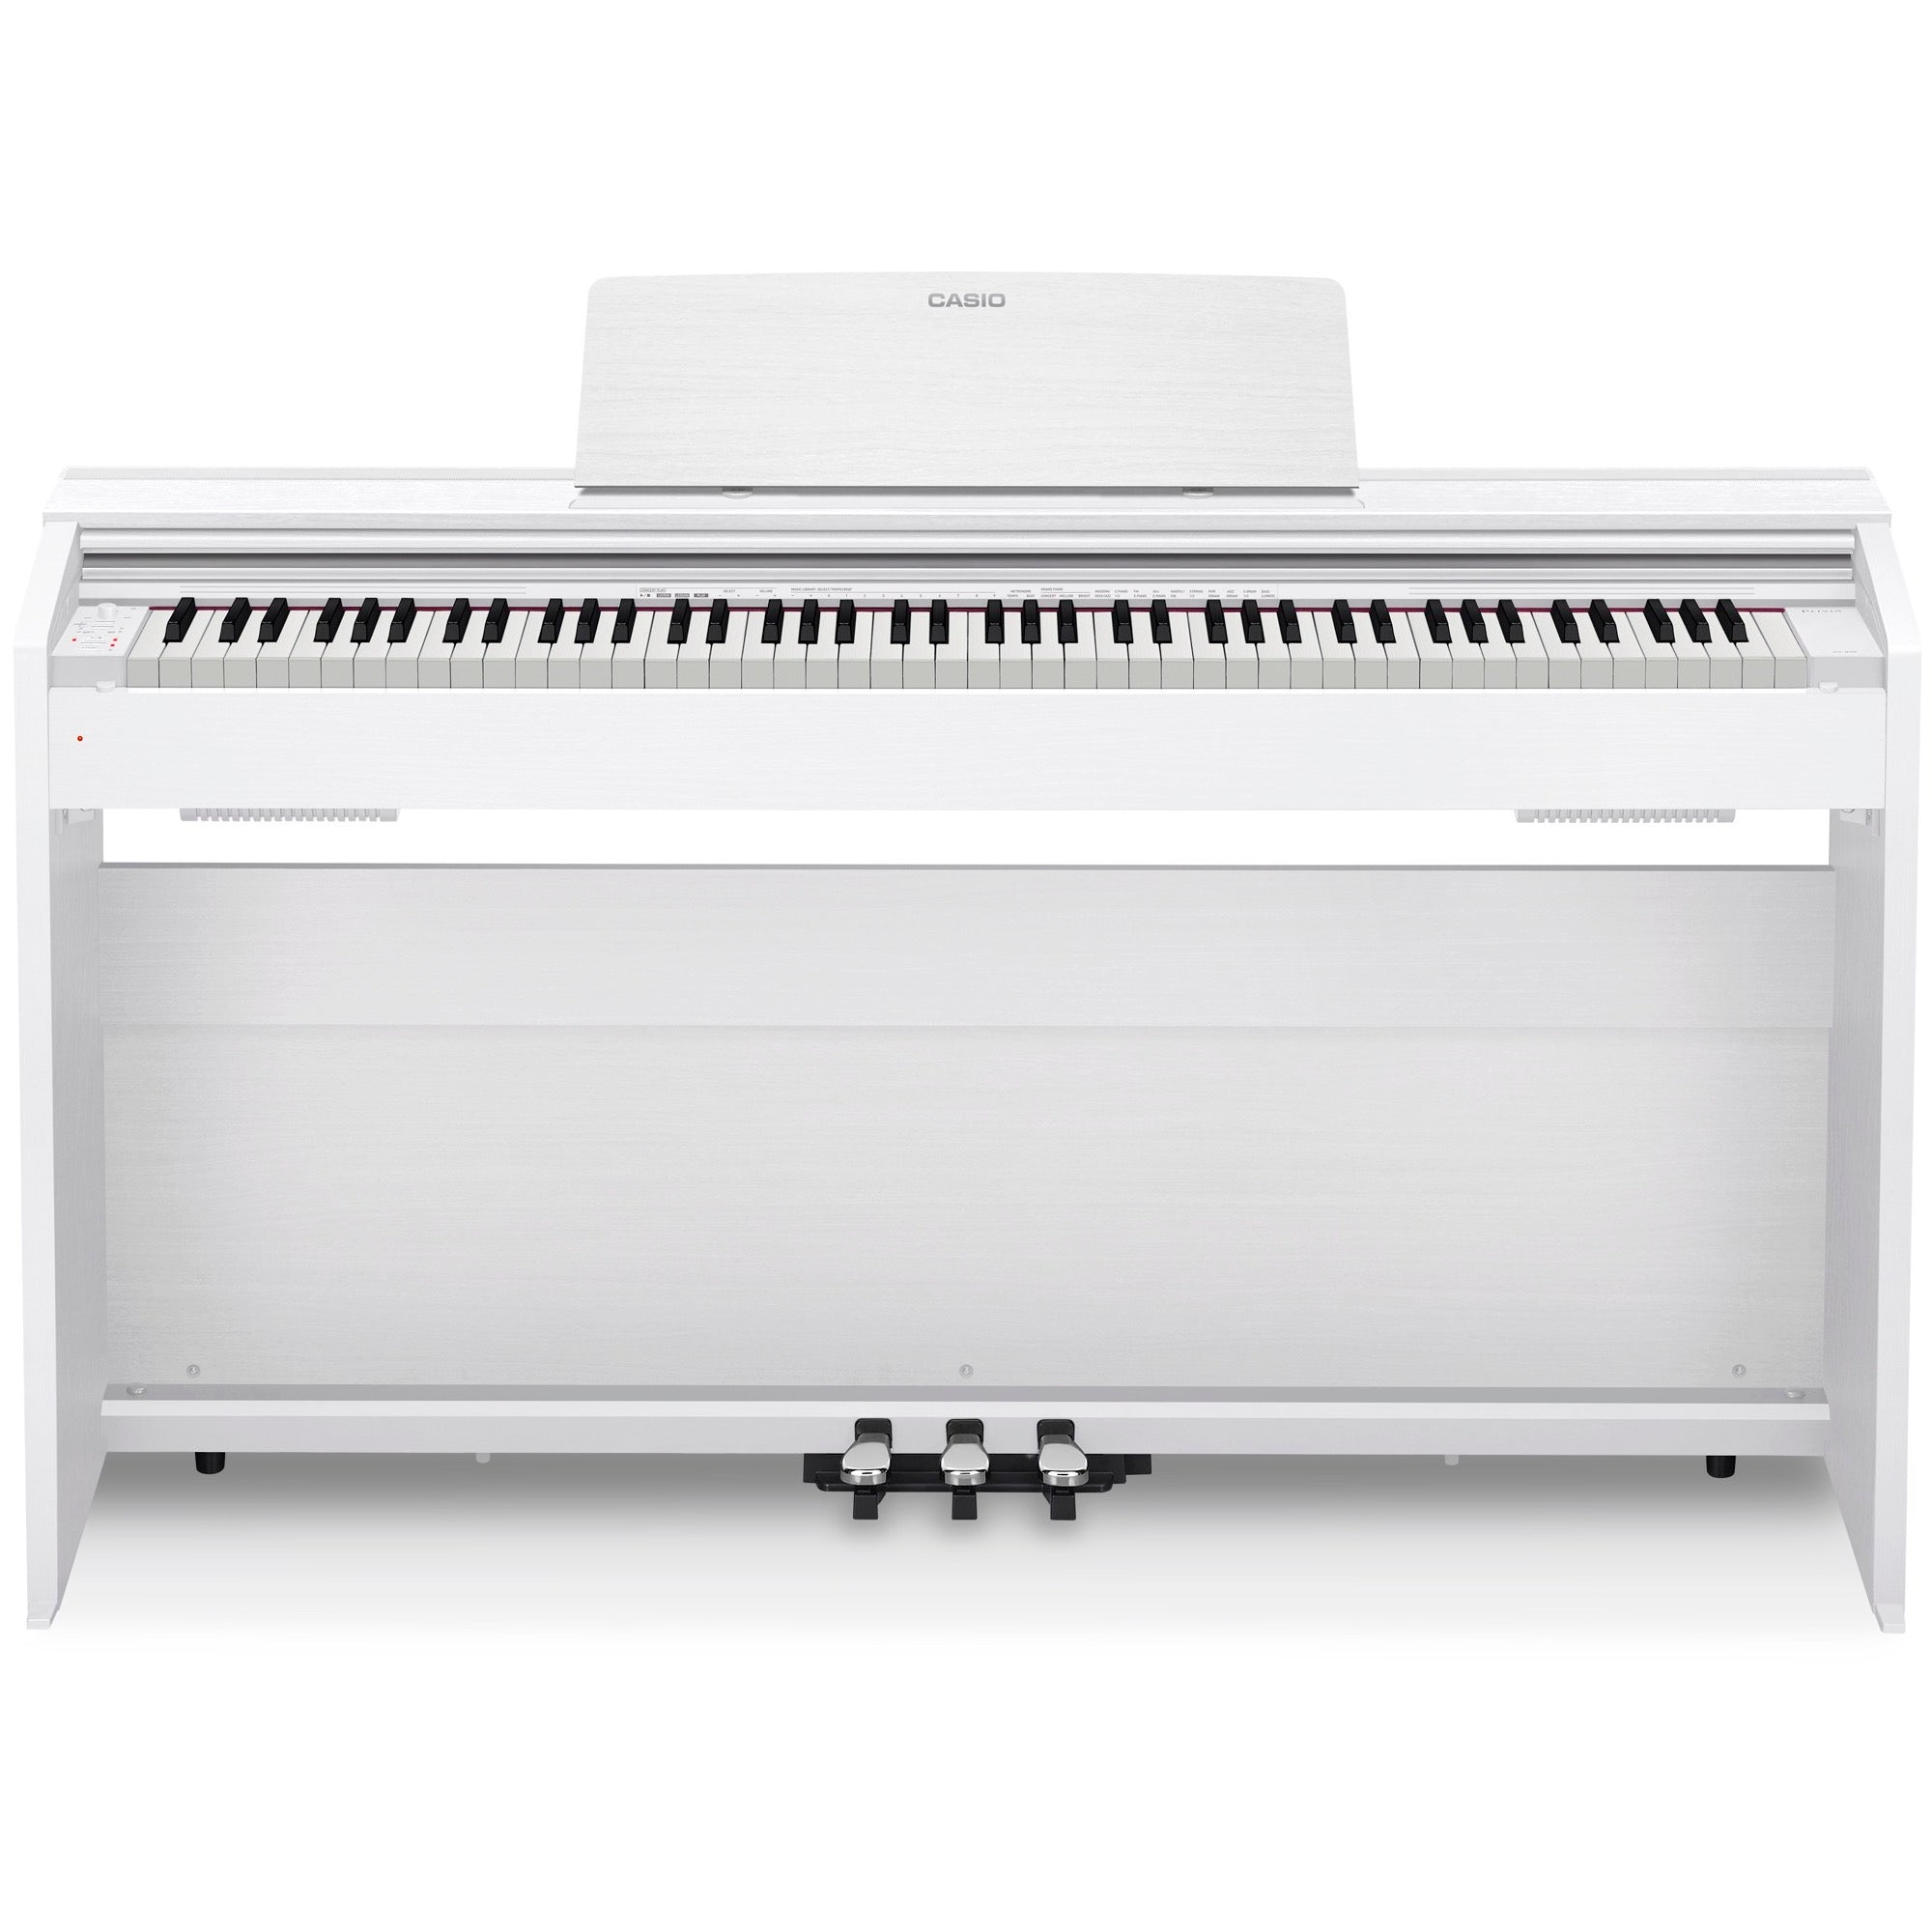 Casio PX-870 Privia Digital Piano, White